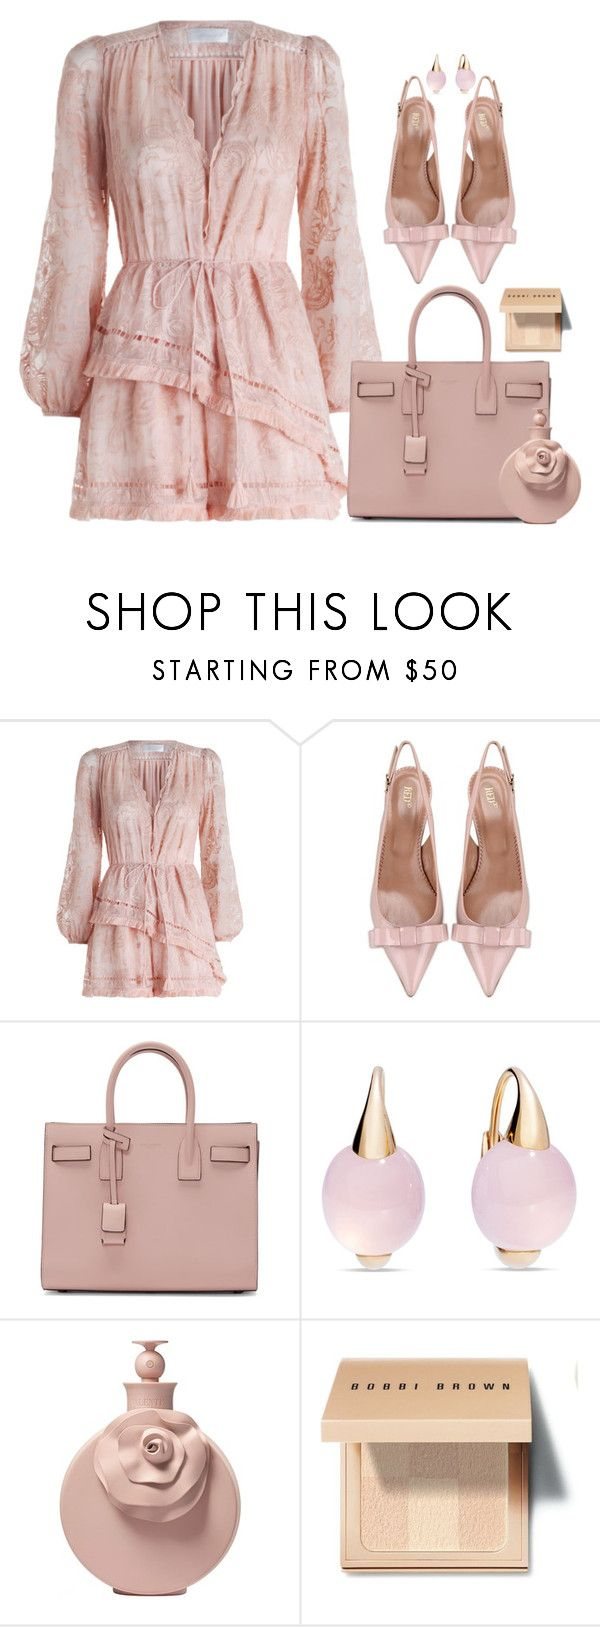 """""""Sweet Play"""" by lisa-holt ❤ liked on Polyvore featuring Zimmermann, RED Valentino, Yves Saint Laurent, Pomellato, Valentino and Bobbi Brown Cosmetics"""